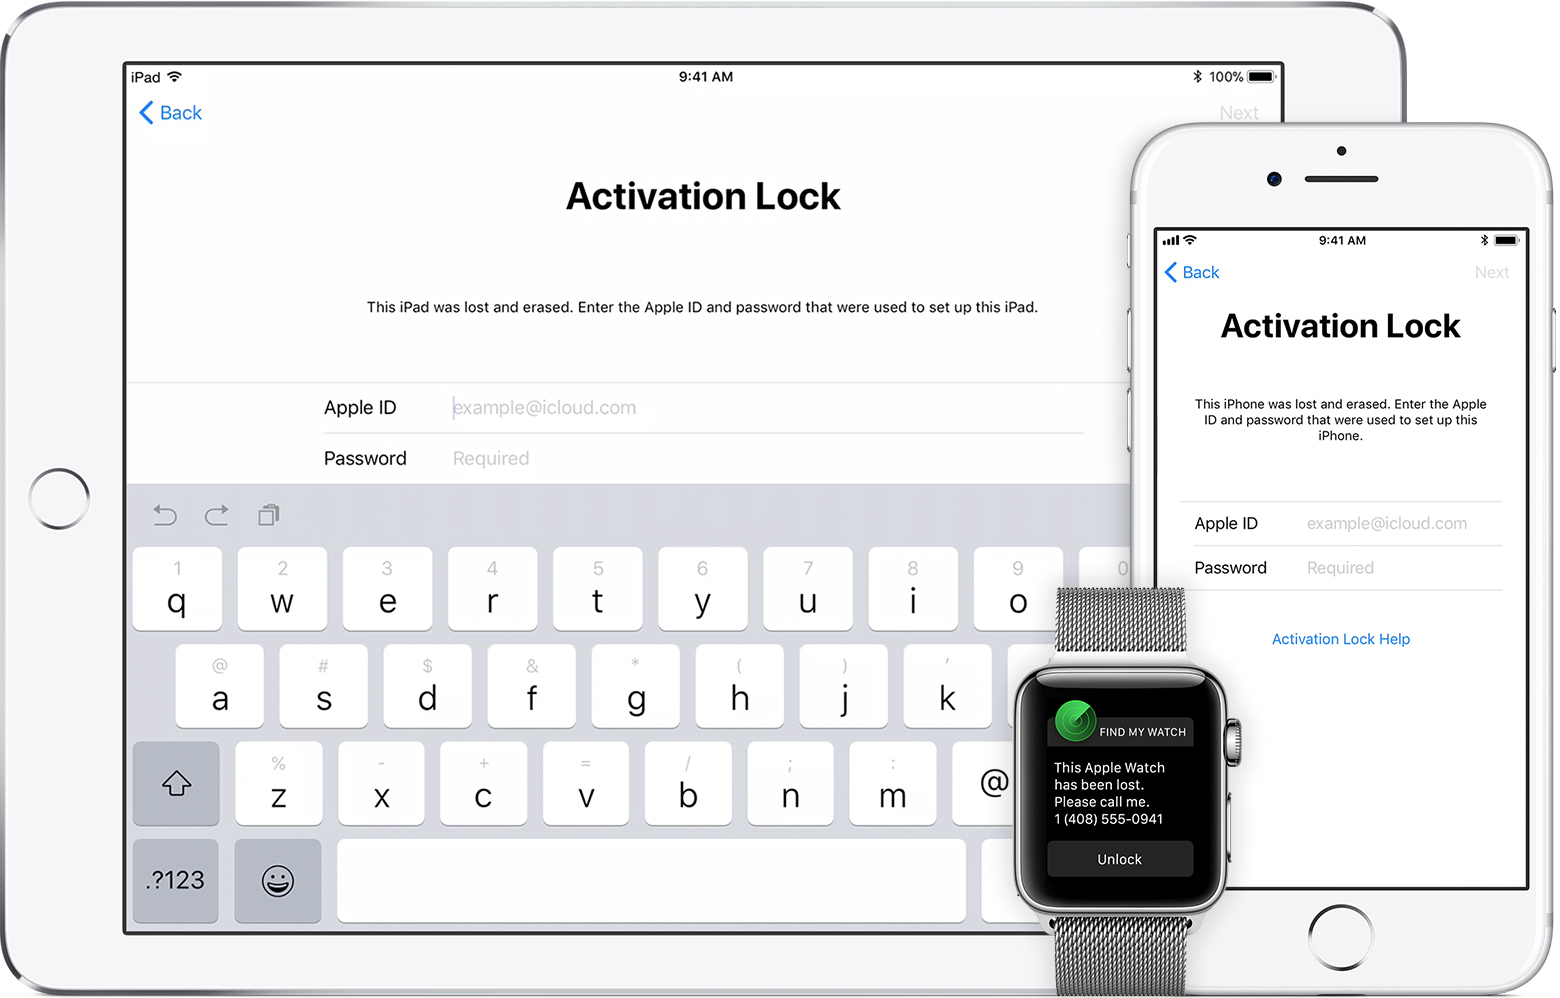 iPhone, iPad and Apple watch displaying activation lock screens.